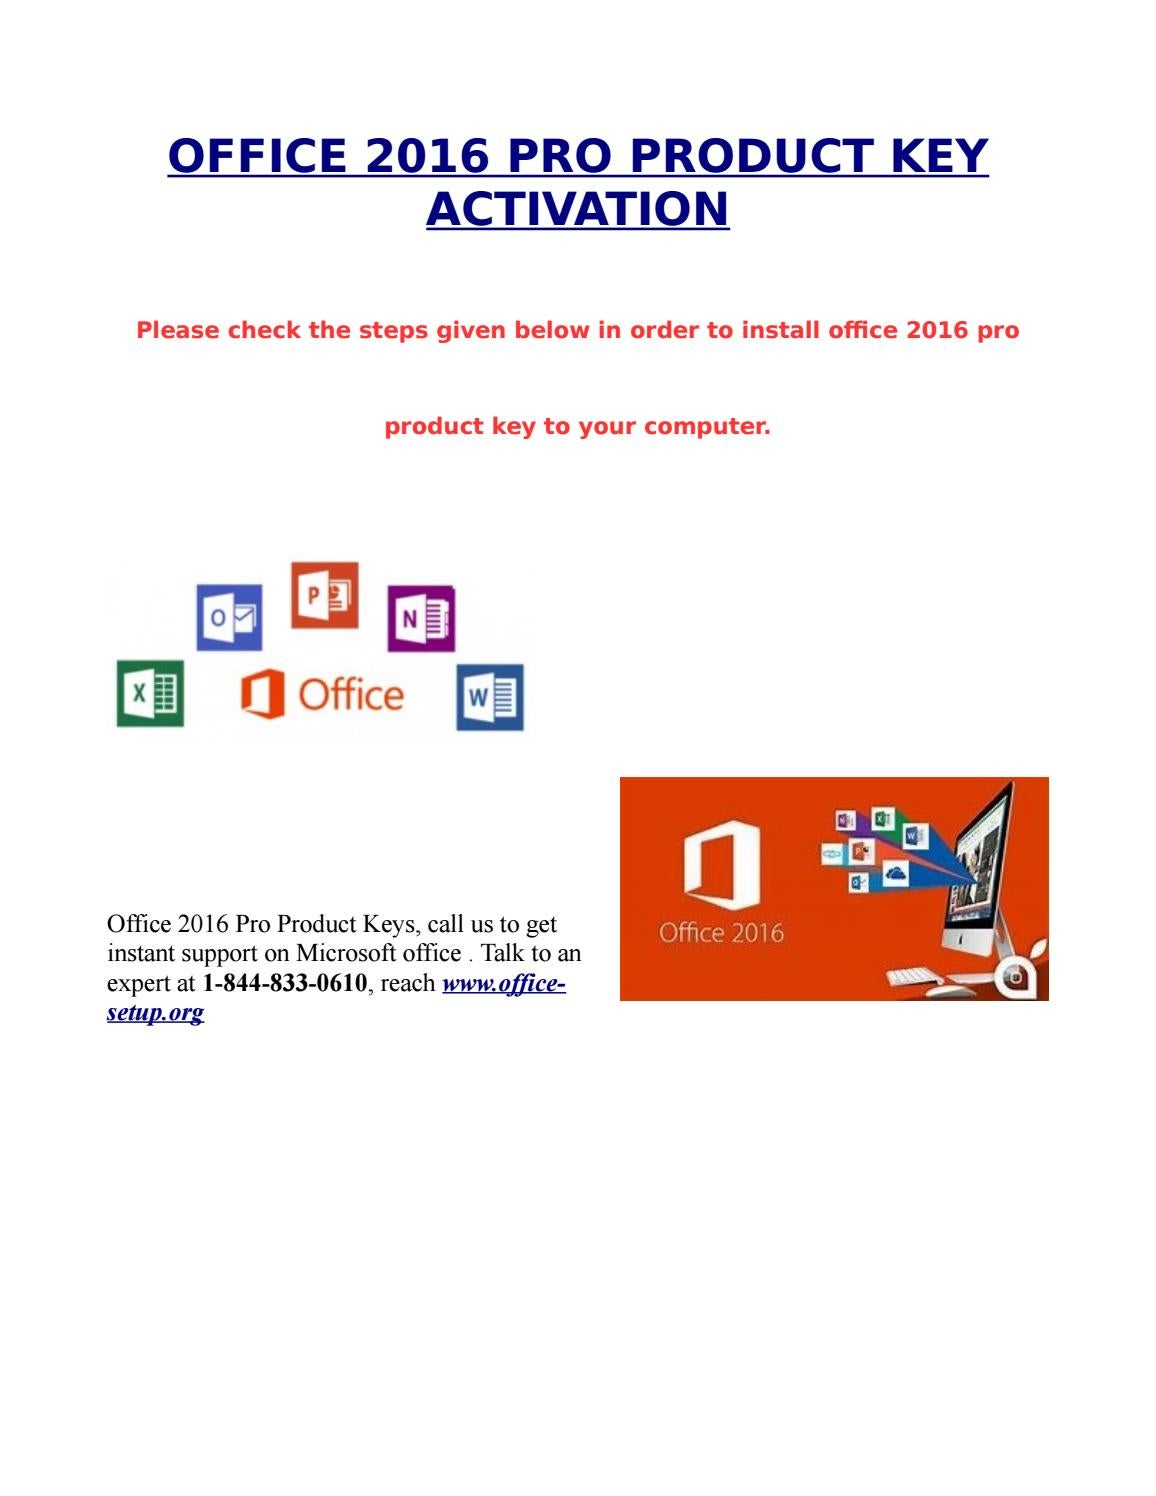 Office 2016 Pro Production Key Activation By Sarika Singh Issuu Microsoft